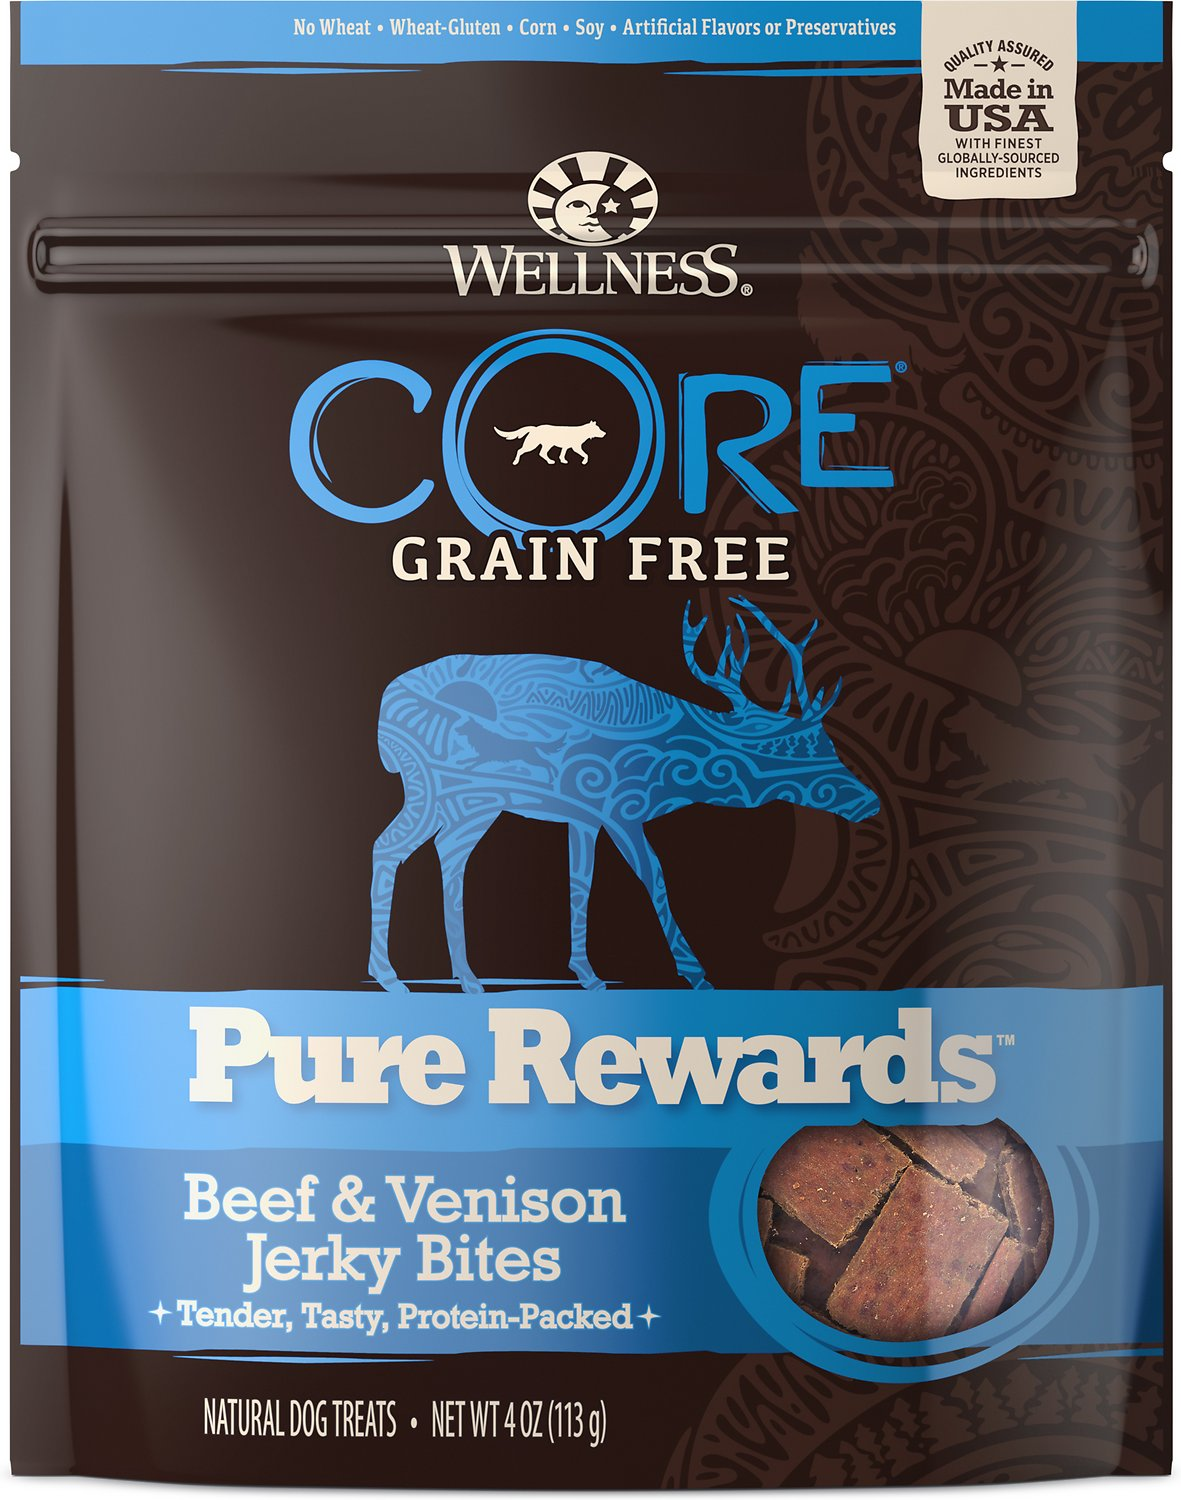 Pure Rewards - Wellness Treat - Dog  Treat - Training Treat - 4 Flavors - USA